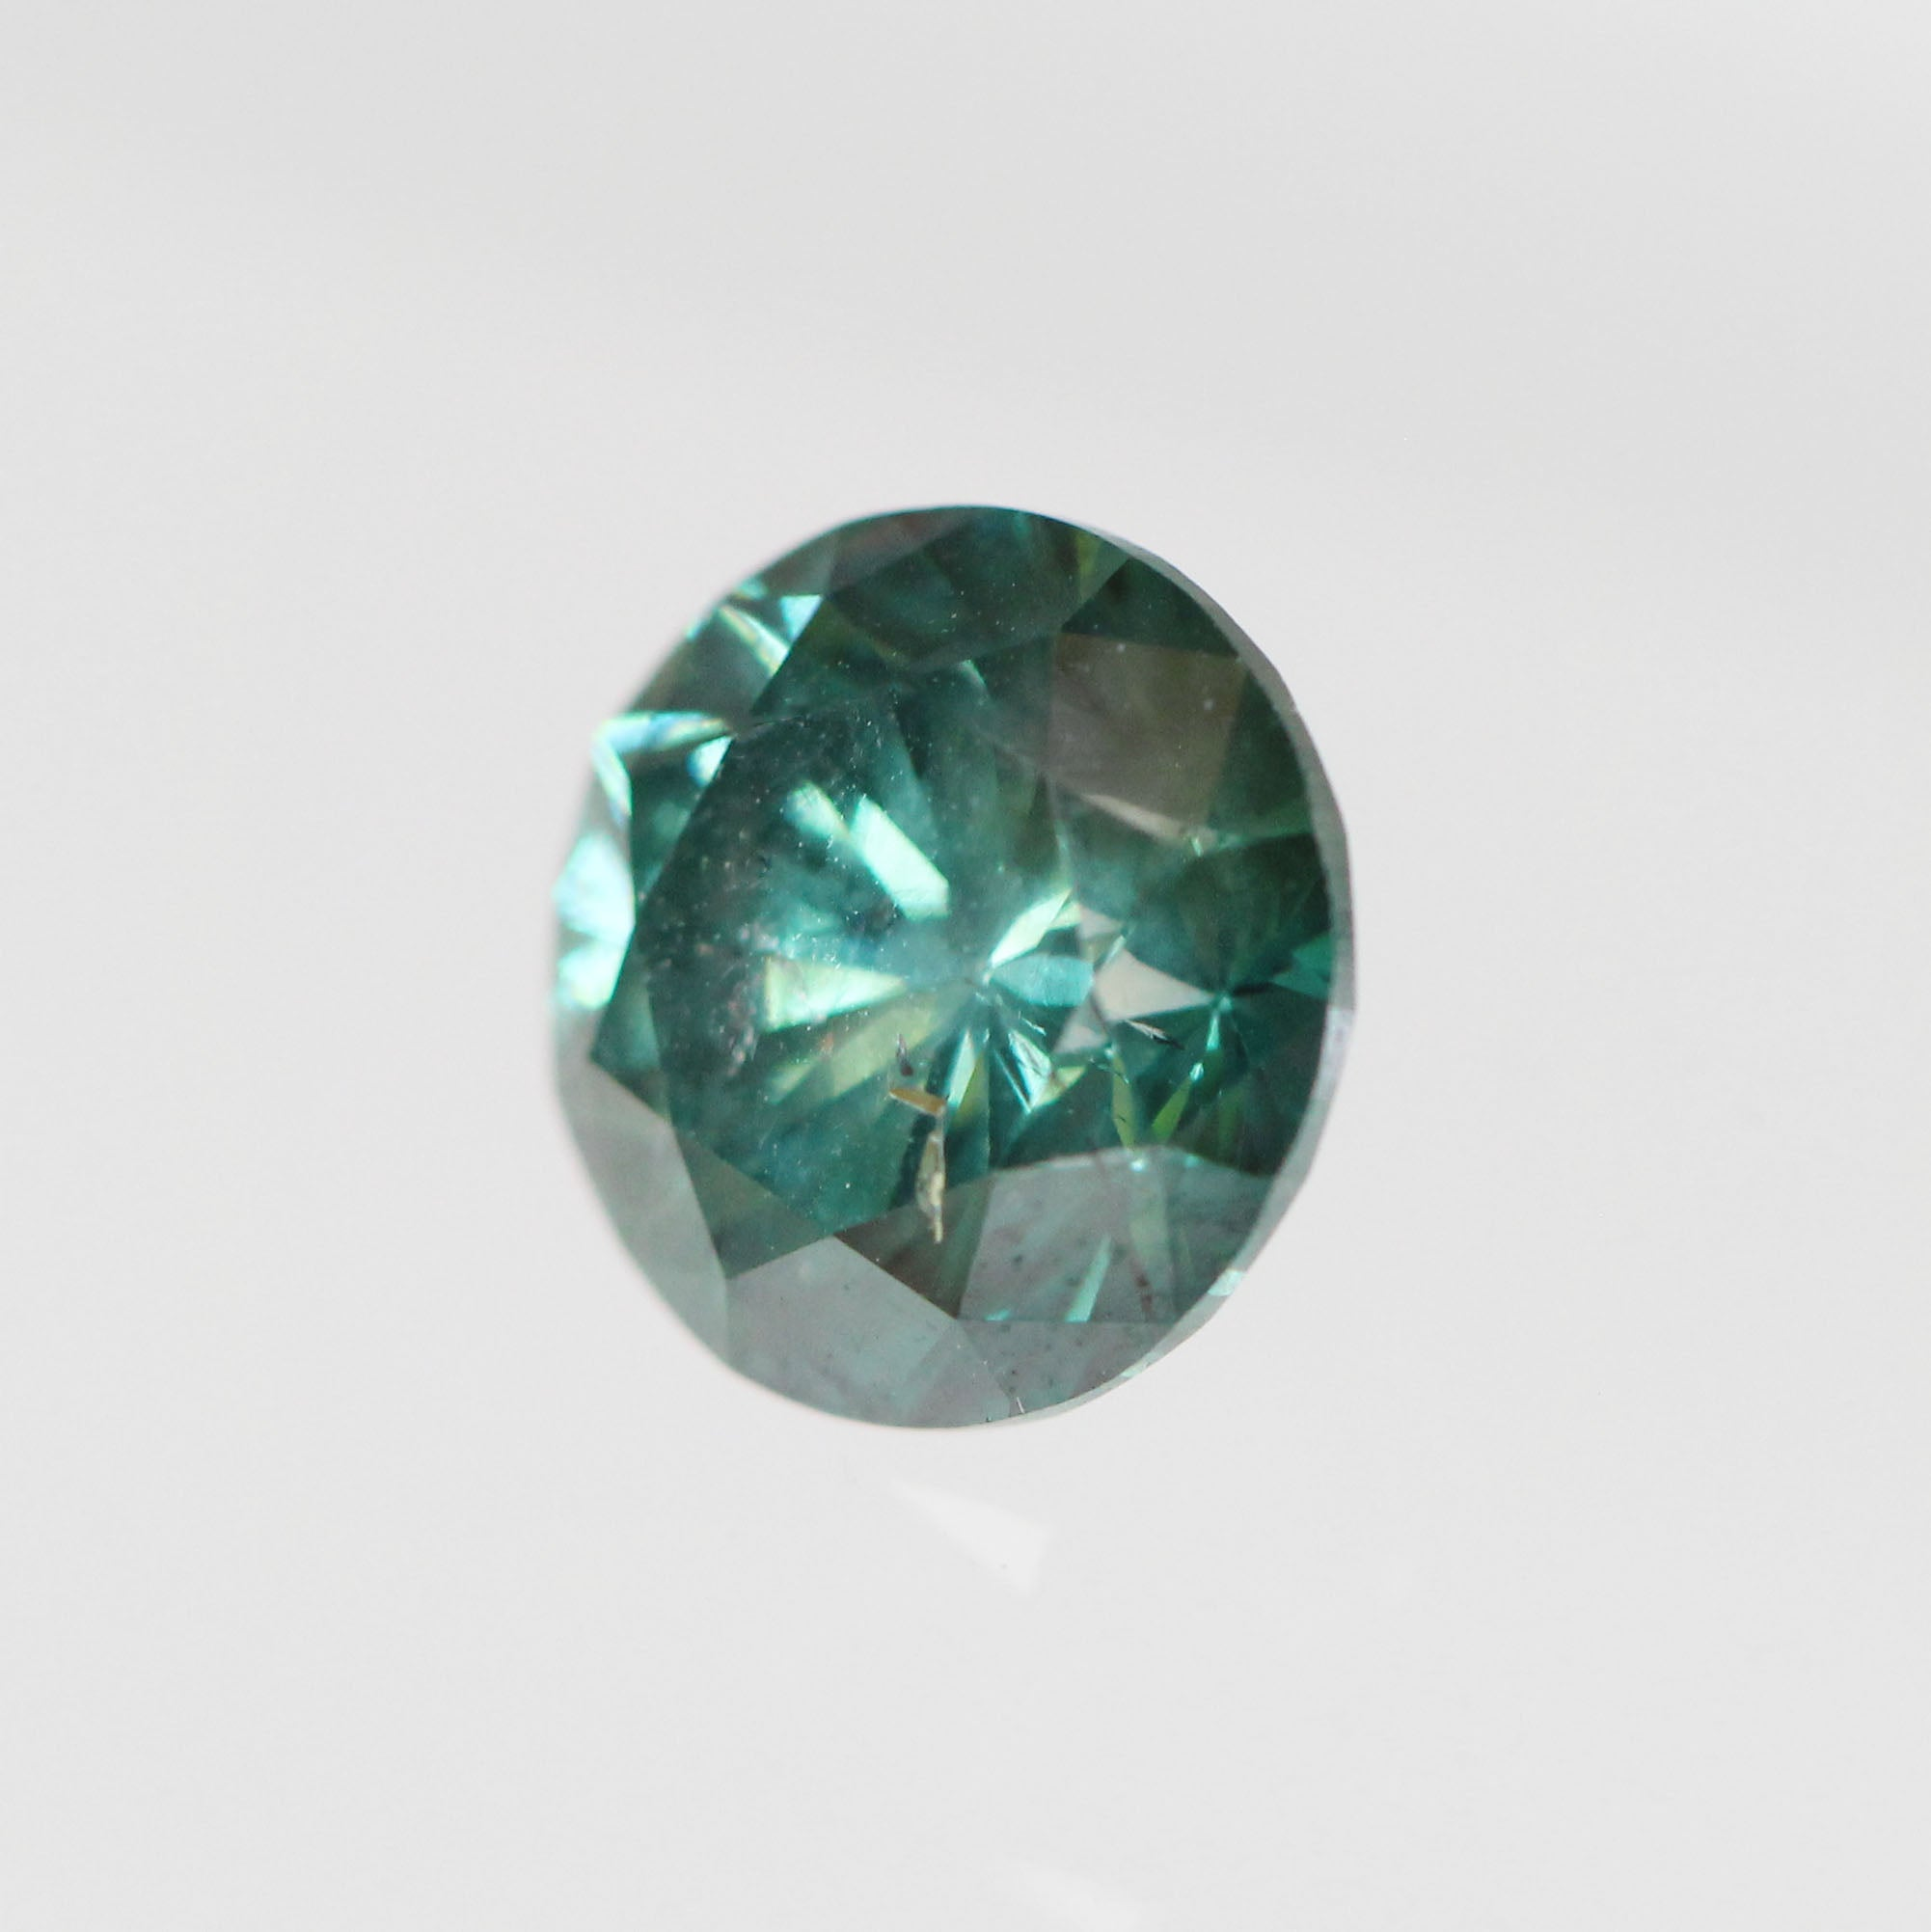 2.44 Carat Round Diamond for Custom Work - Inventory Code RBGR244 - Celestial Diamonds ® by Midwinter Co.